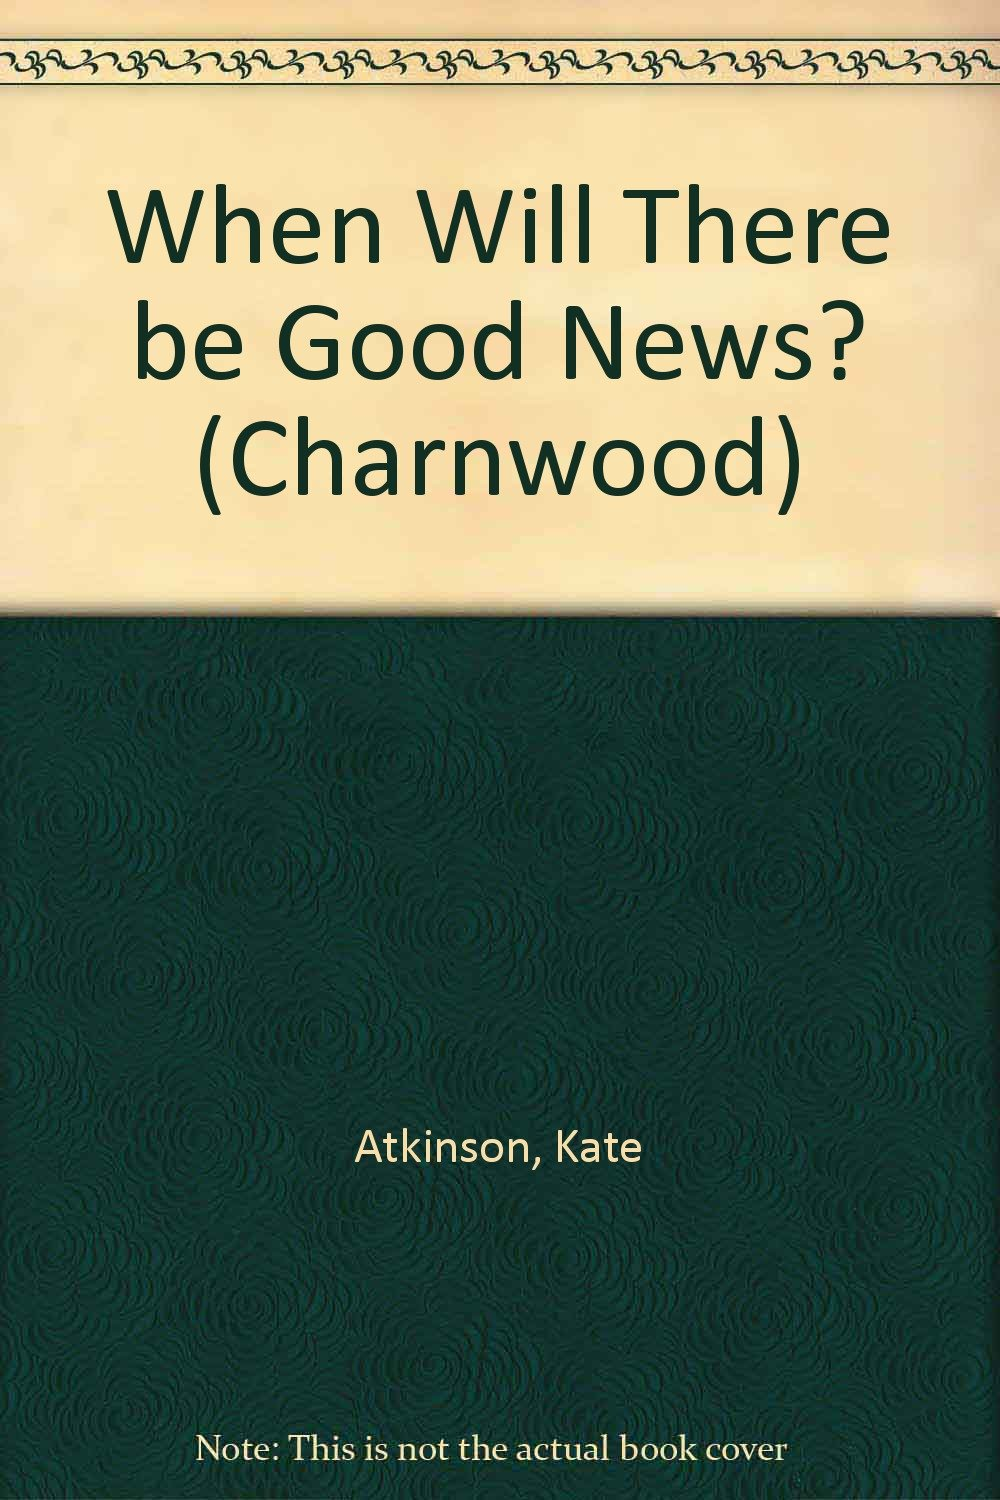 When will there be good news charnwood kate atkinson 9781847827227 amazon com books